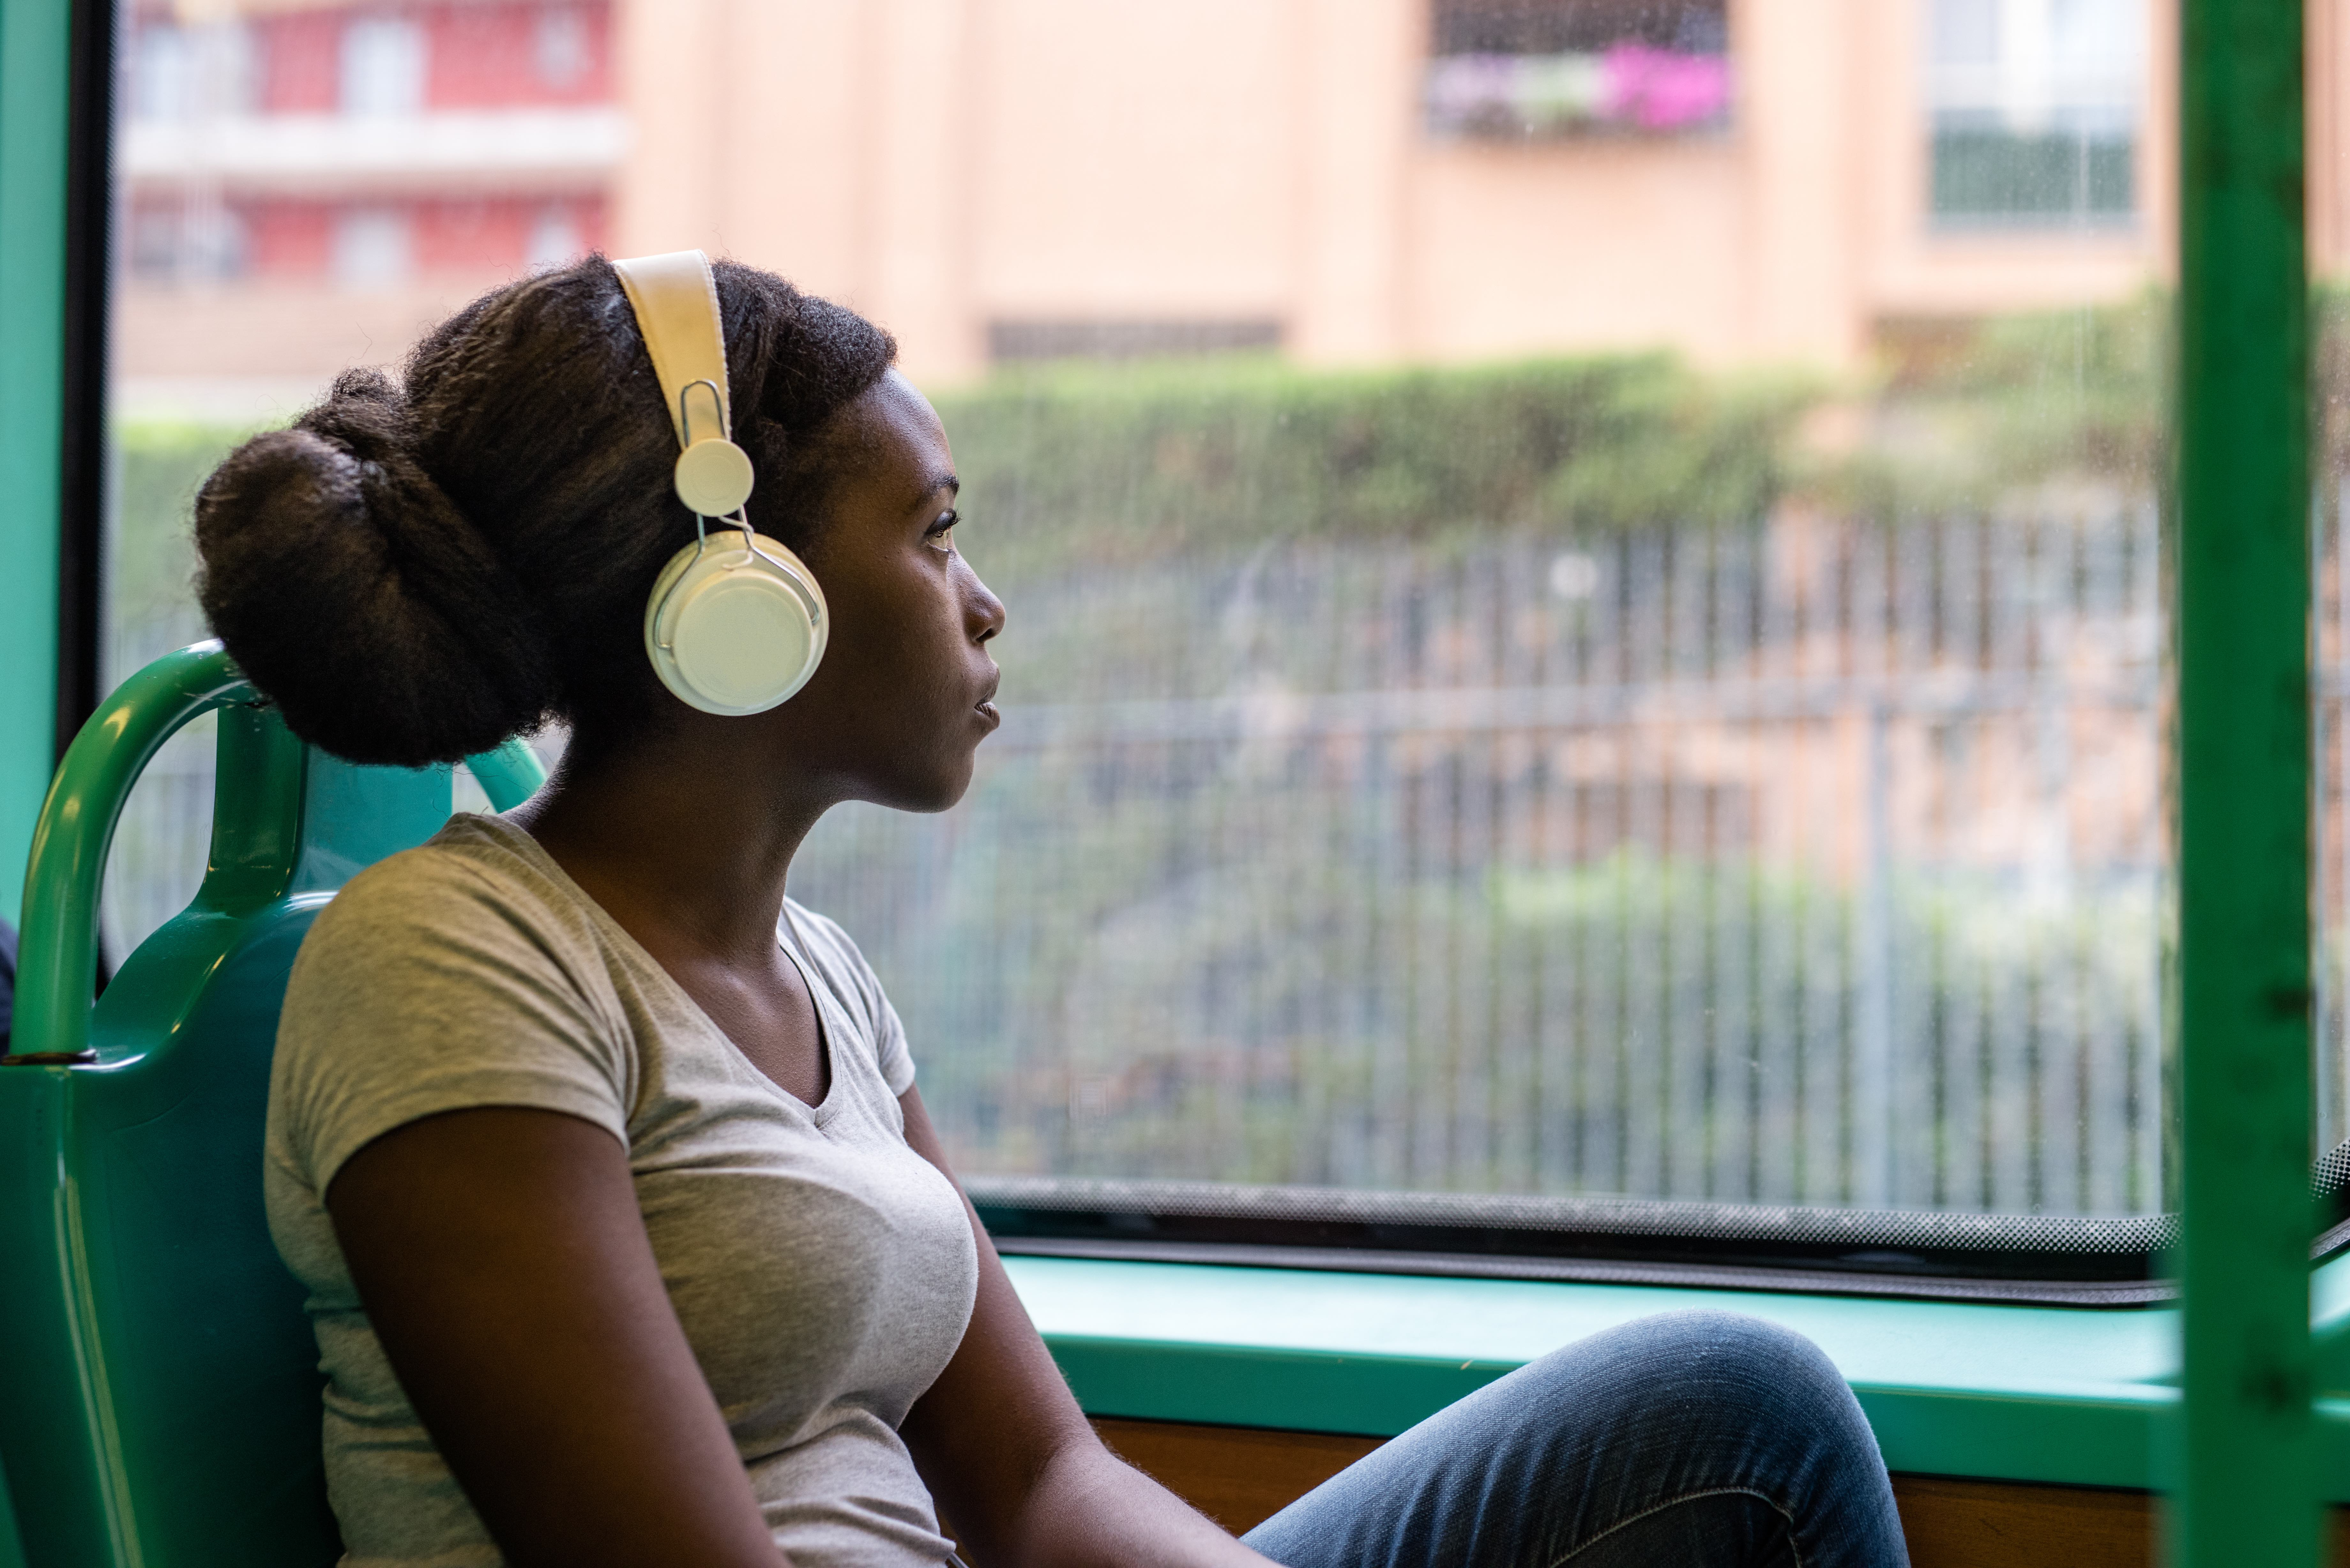 young Black girl on bus with headphones on looking out window